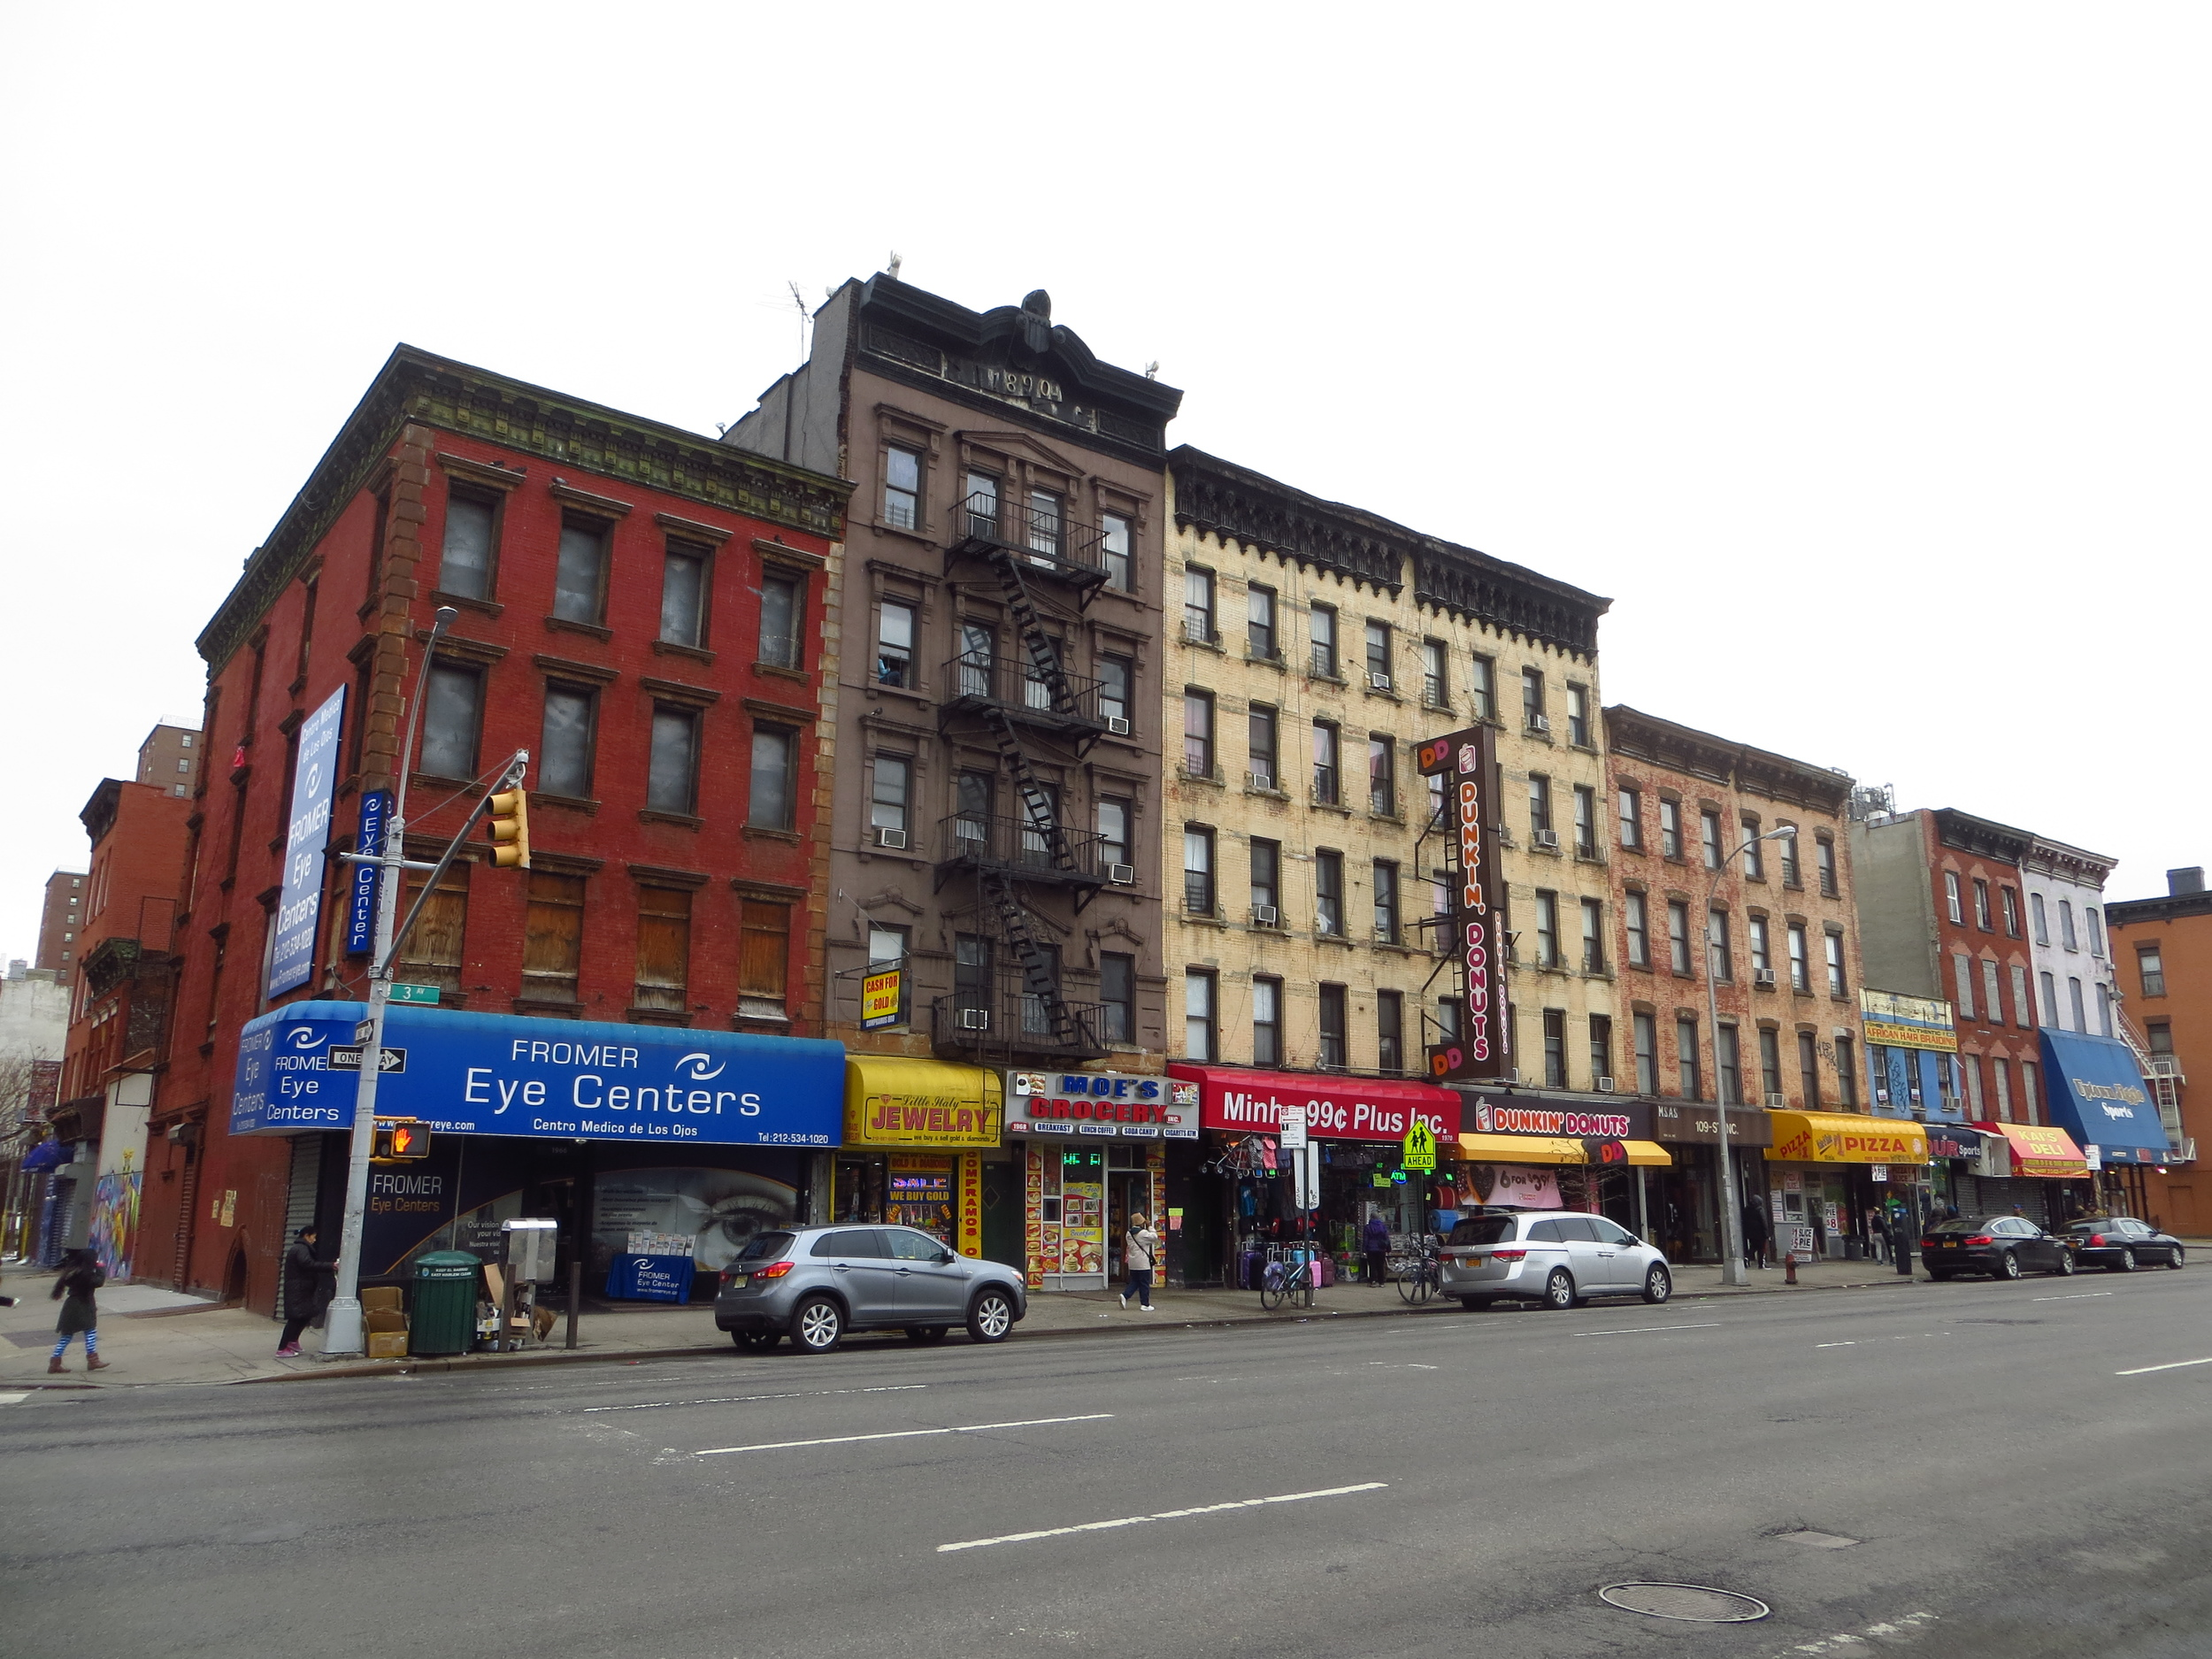 3rd Ave. in East Harlem